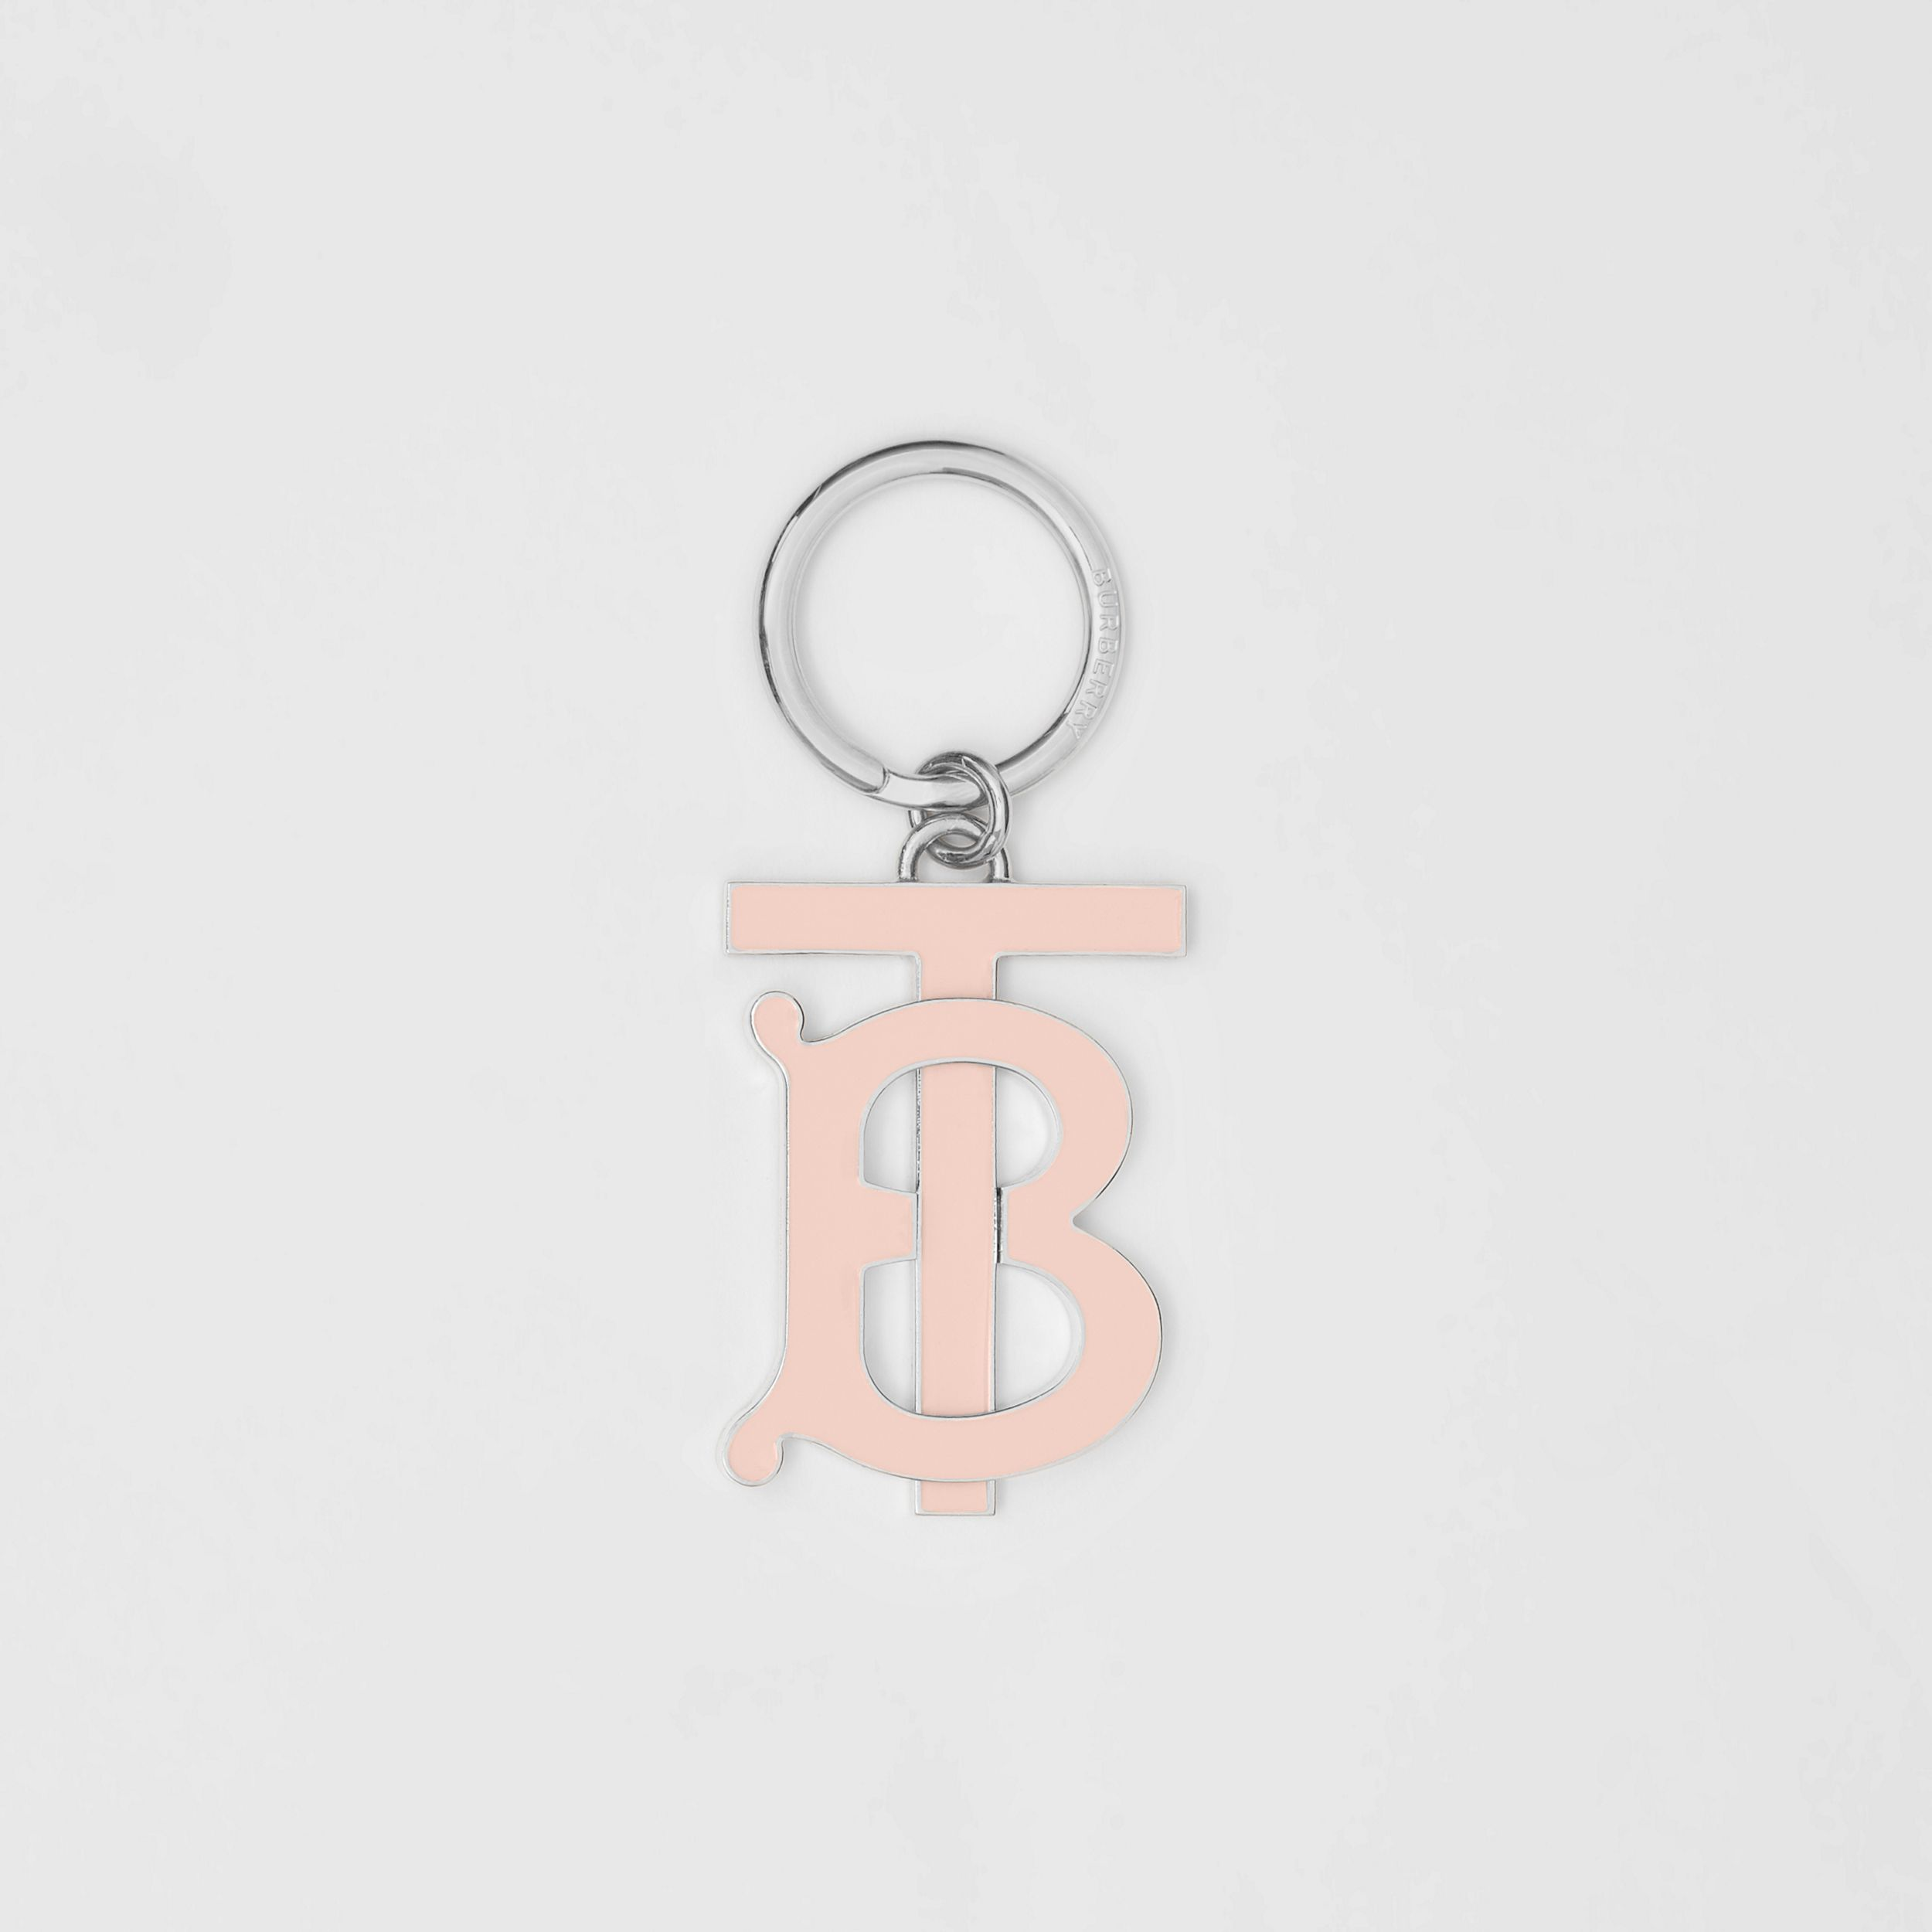 Monogram Motif Palladium-plated Key Charm in Rose Beige - Women | Burberry Hong Kong S.A.R. - 1